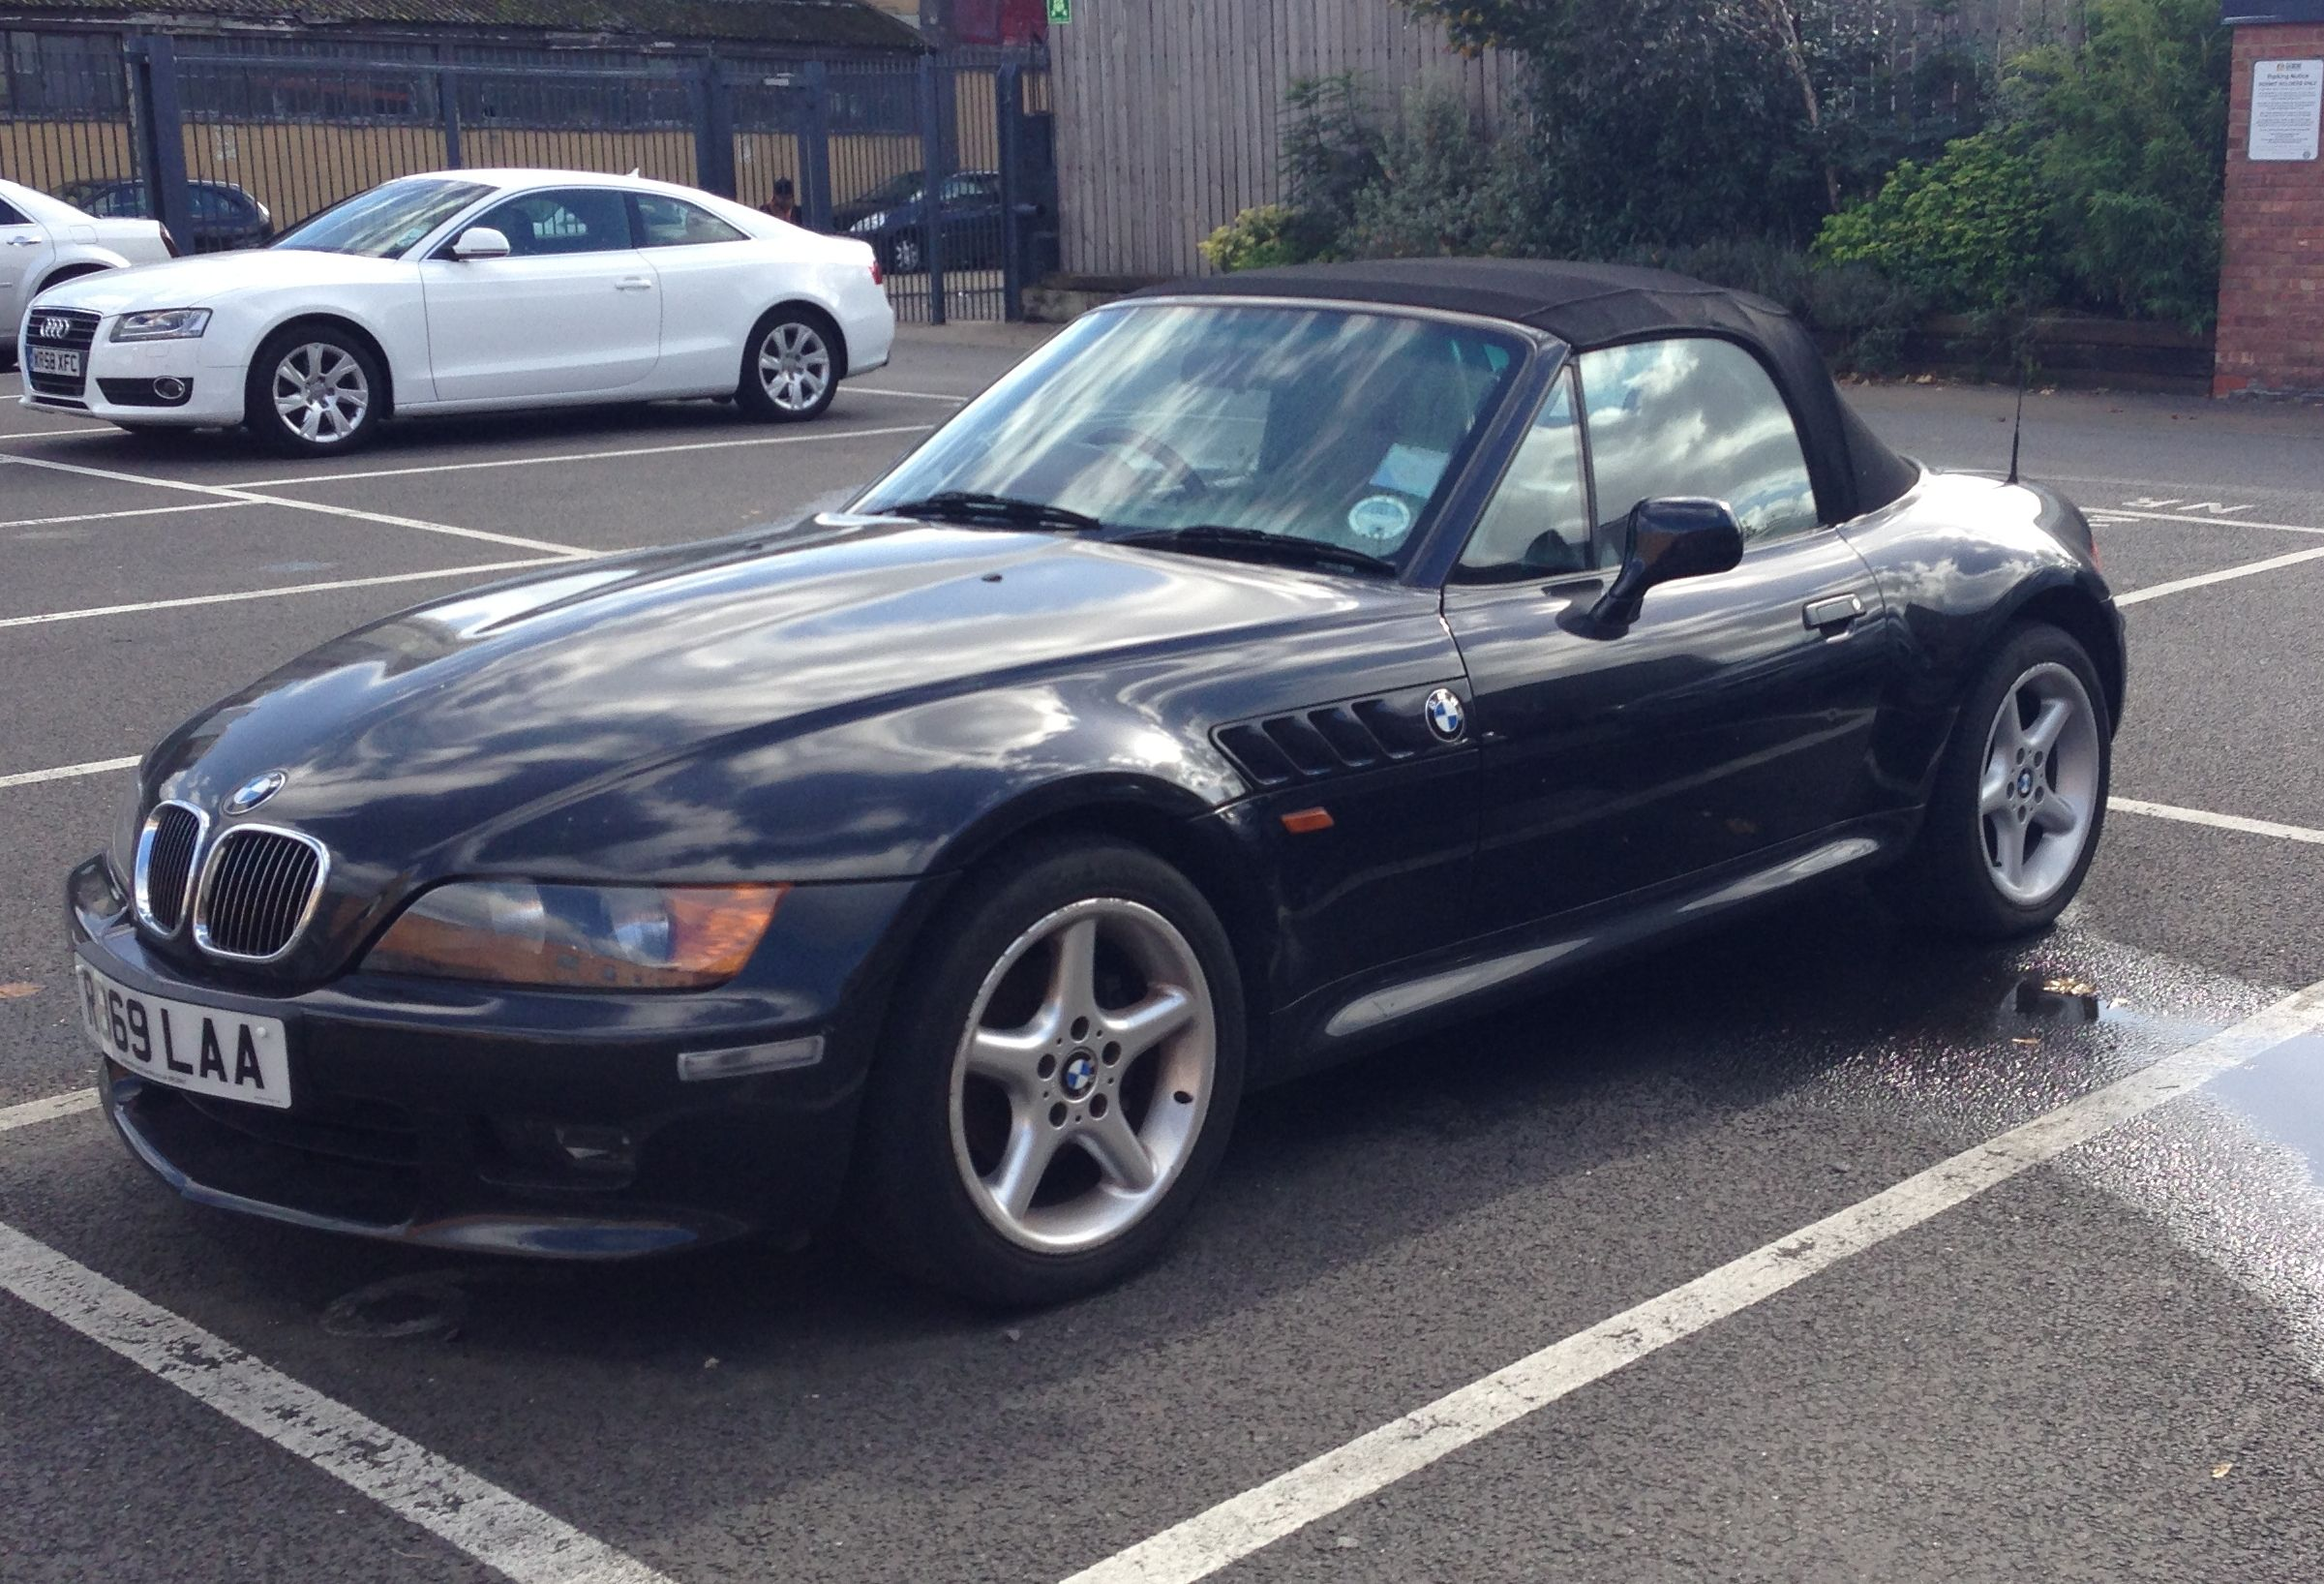 Gorgeous Z3 For Sale 163 2000 Http Www Gumtree Com P